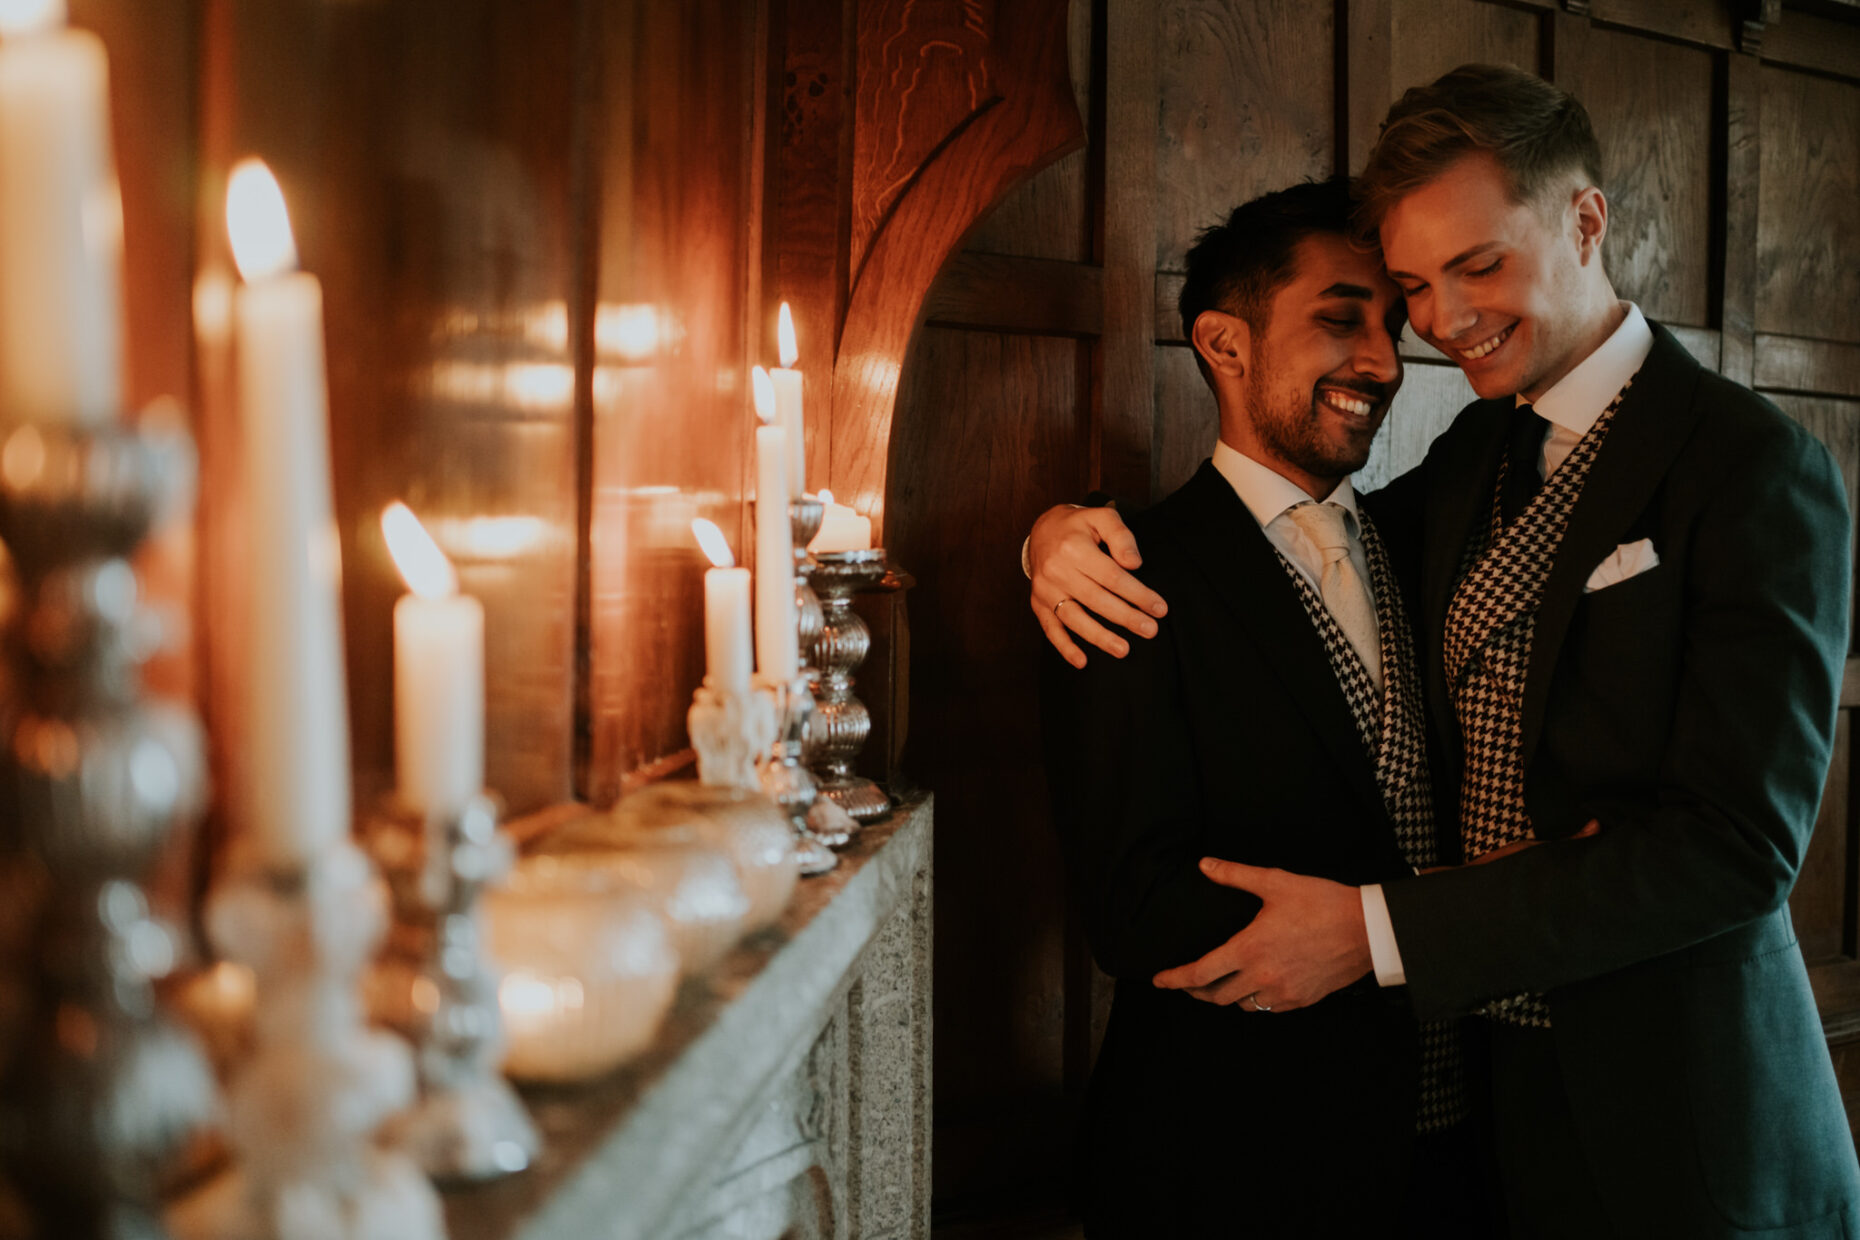 two groom hug tightly next to a fireplace and the orange glow from the candles lights and warms their faces